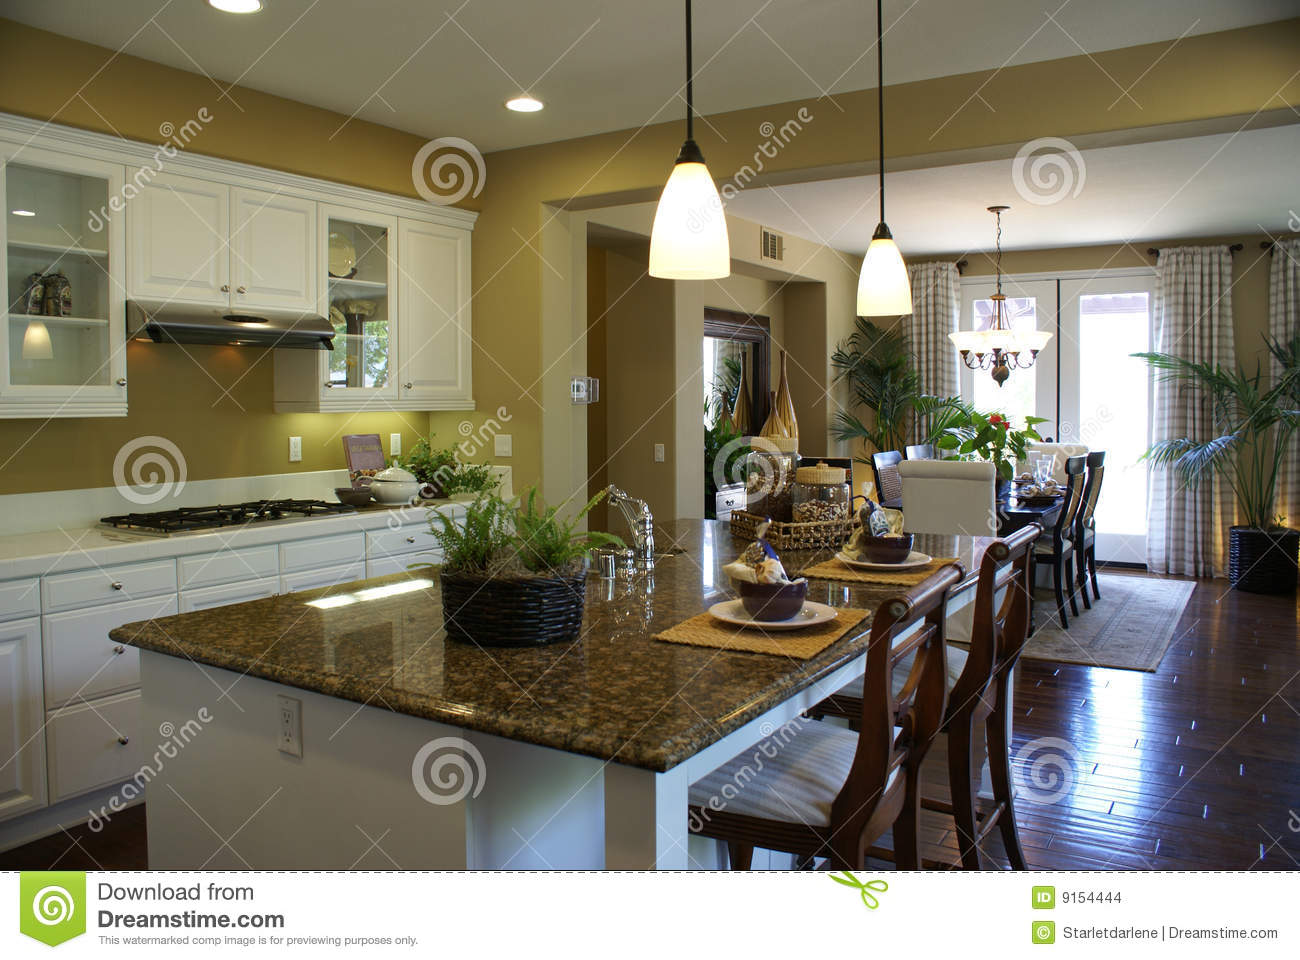 Belle cuisine moderne images stock image 9154444 for Belle cuisine moderne